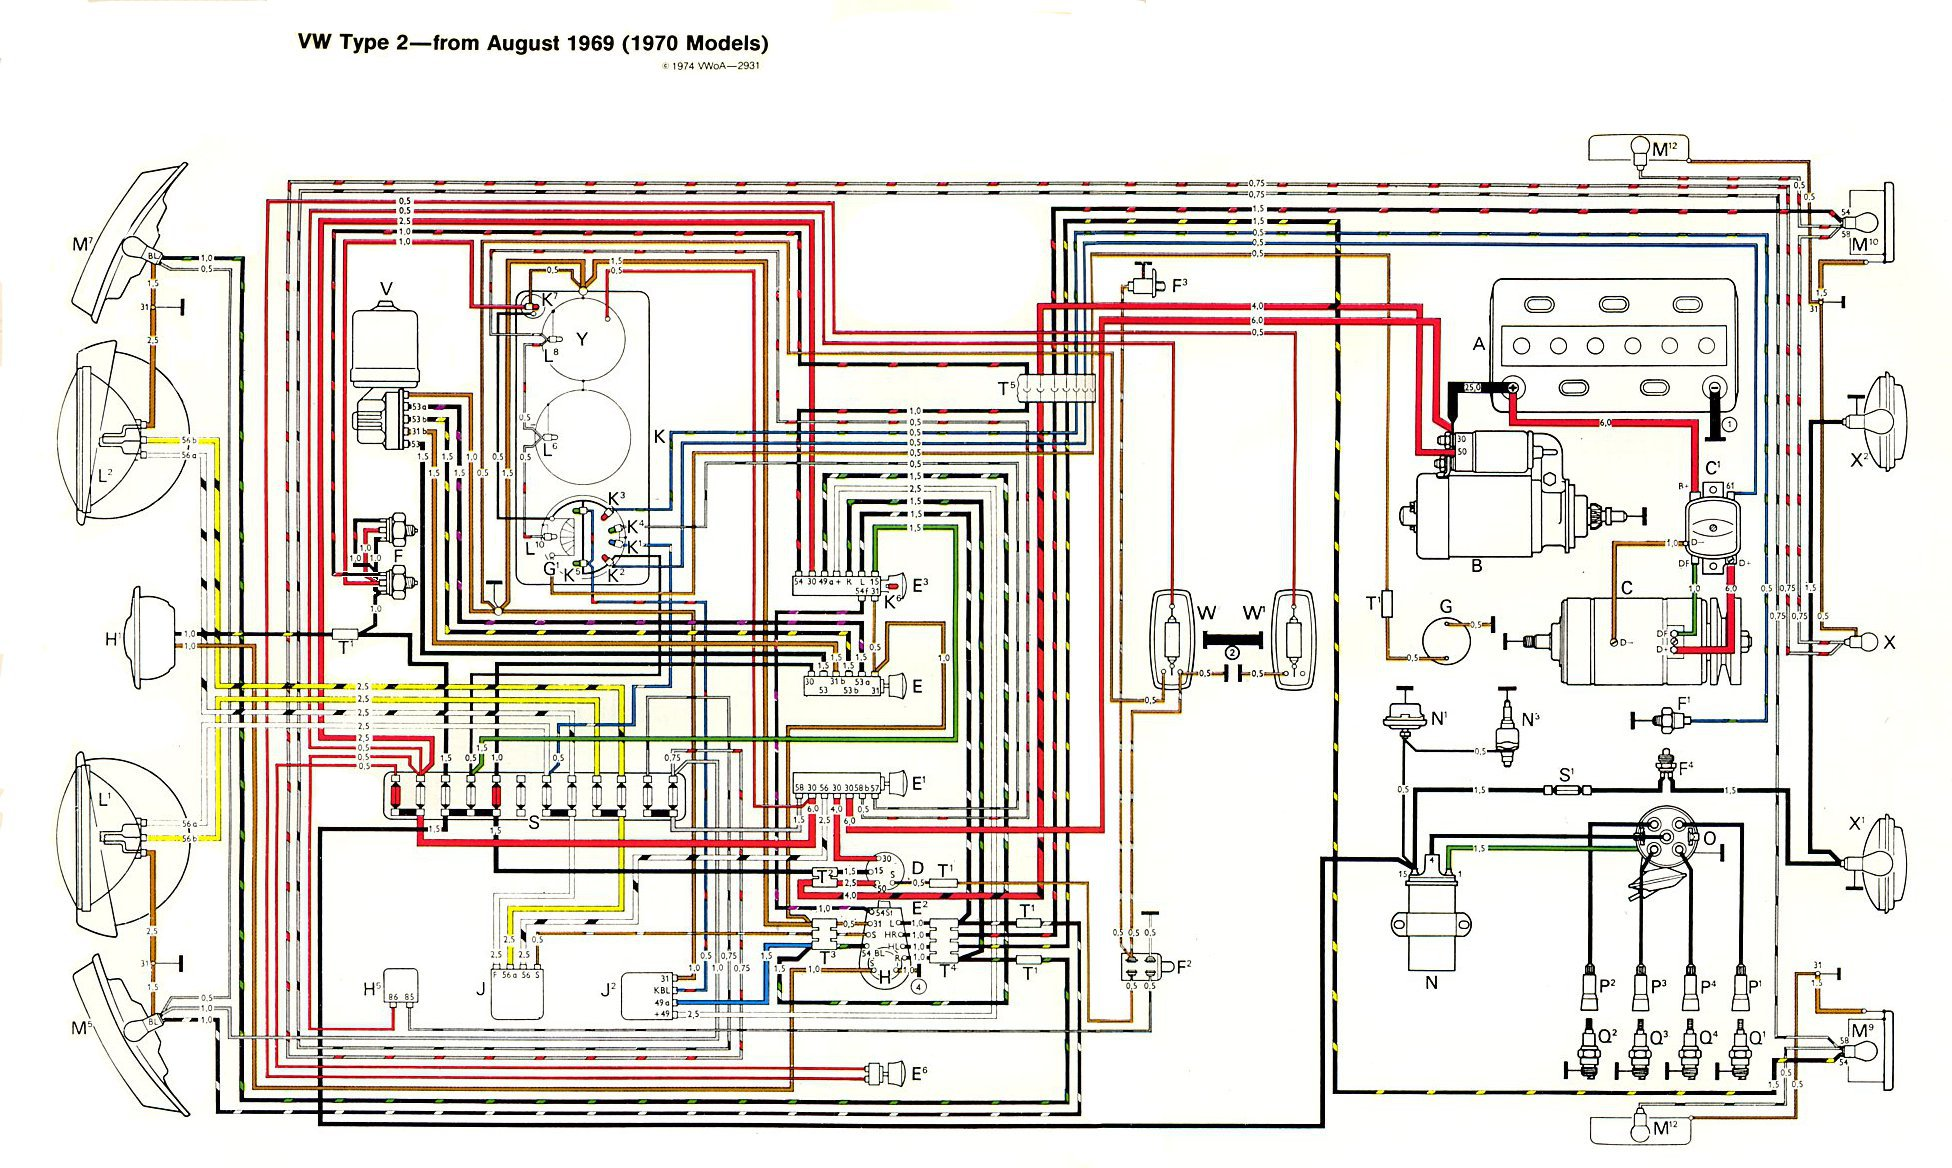 1975 Vw Bus Electrical Schematic - wiring diagram cabling-cloud -  cabling-cloud.albergoinsicilia.it | Bus Electrical Wiring Diagrams |  | cabling-cloud.albergoinsicilia.it